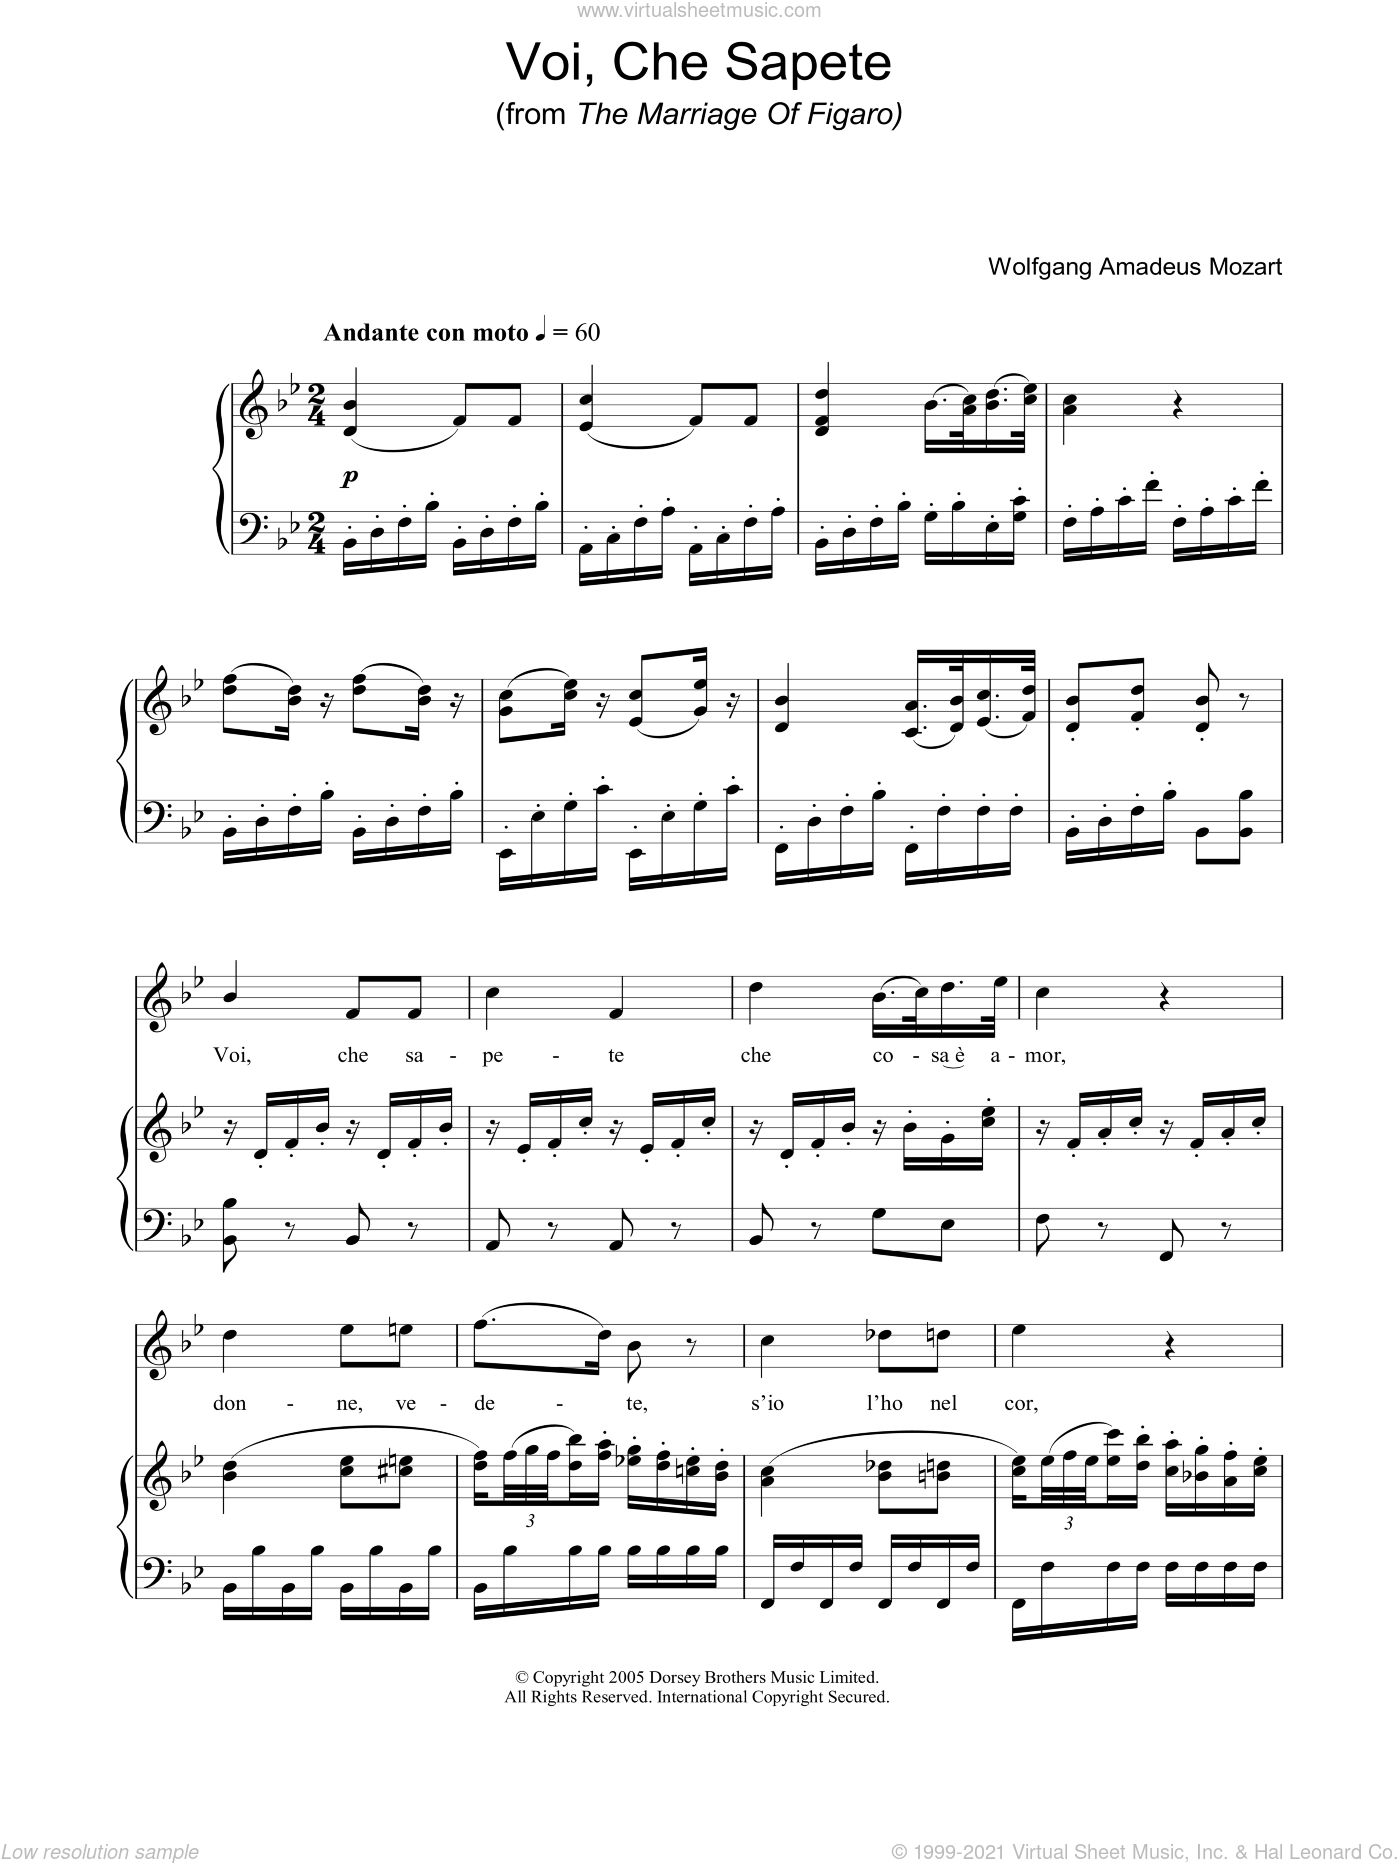 Voi Che Sapete (from The Marriage Of Figaro) sheet music for voice, piano or guitar by Wolfgang Amadeus Mozart, classical score, intermediate skill level